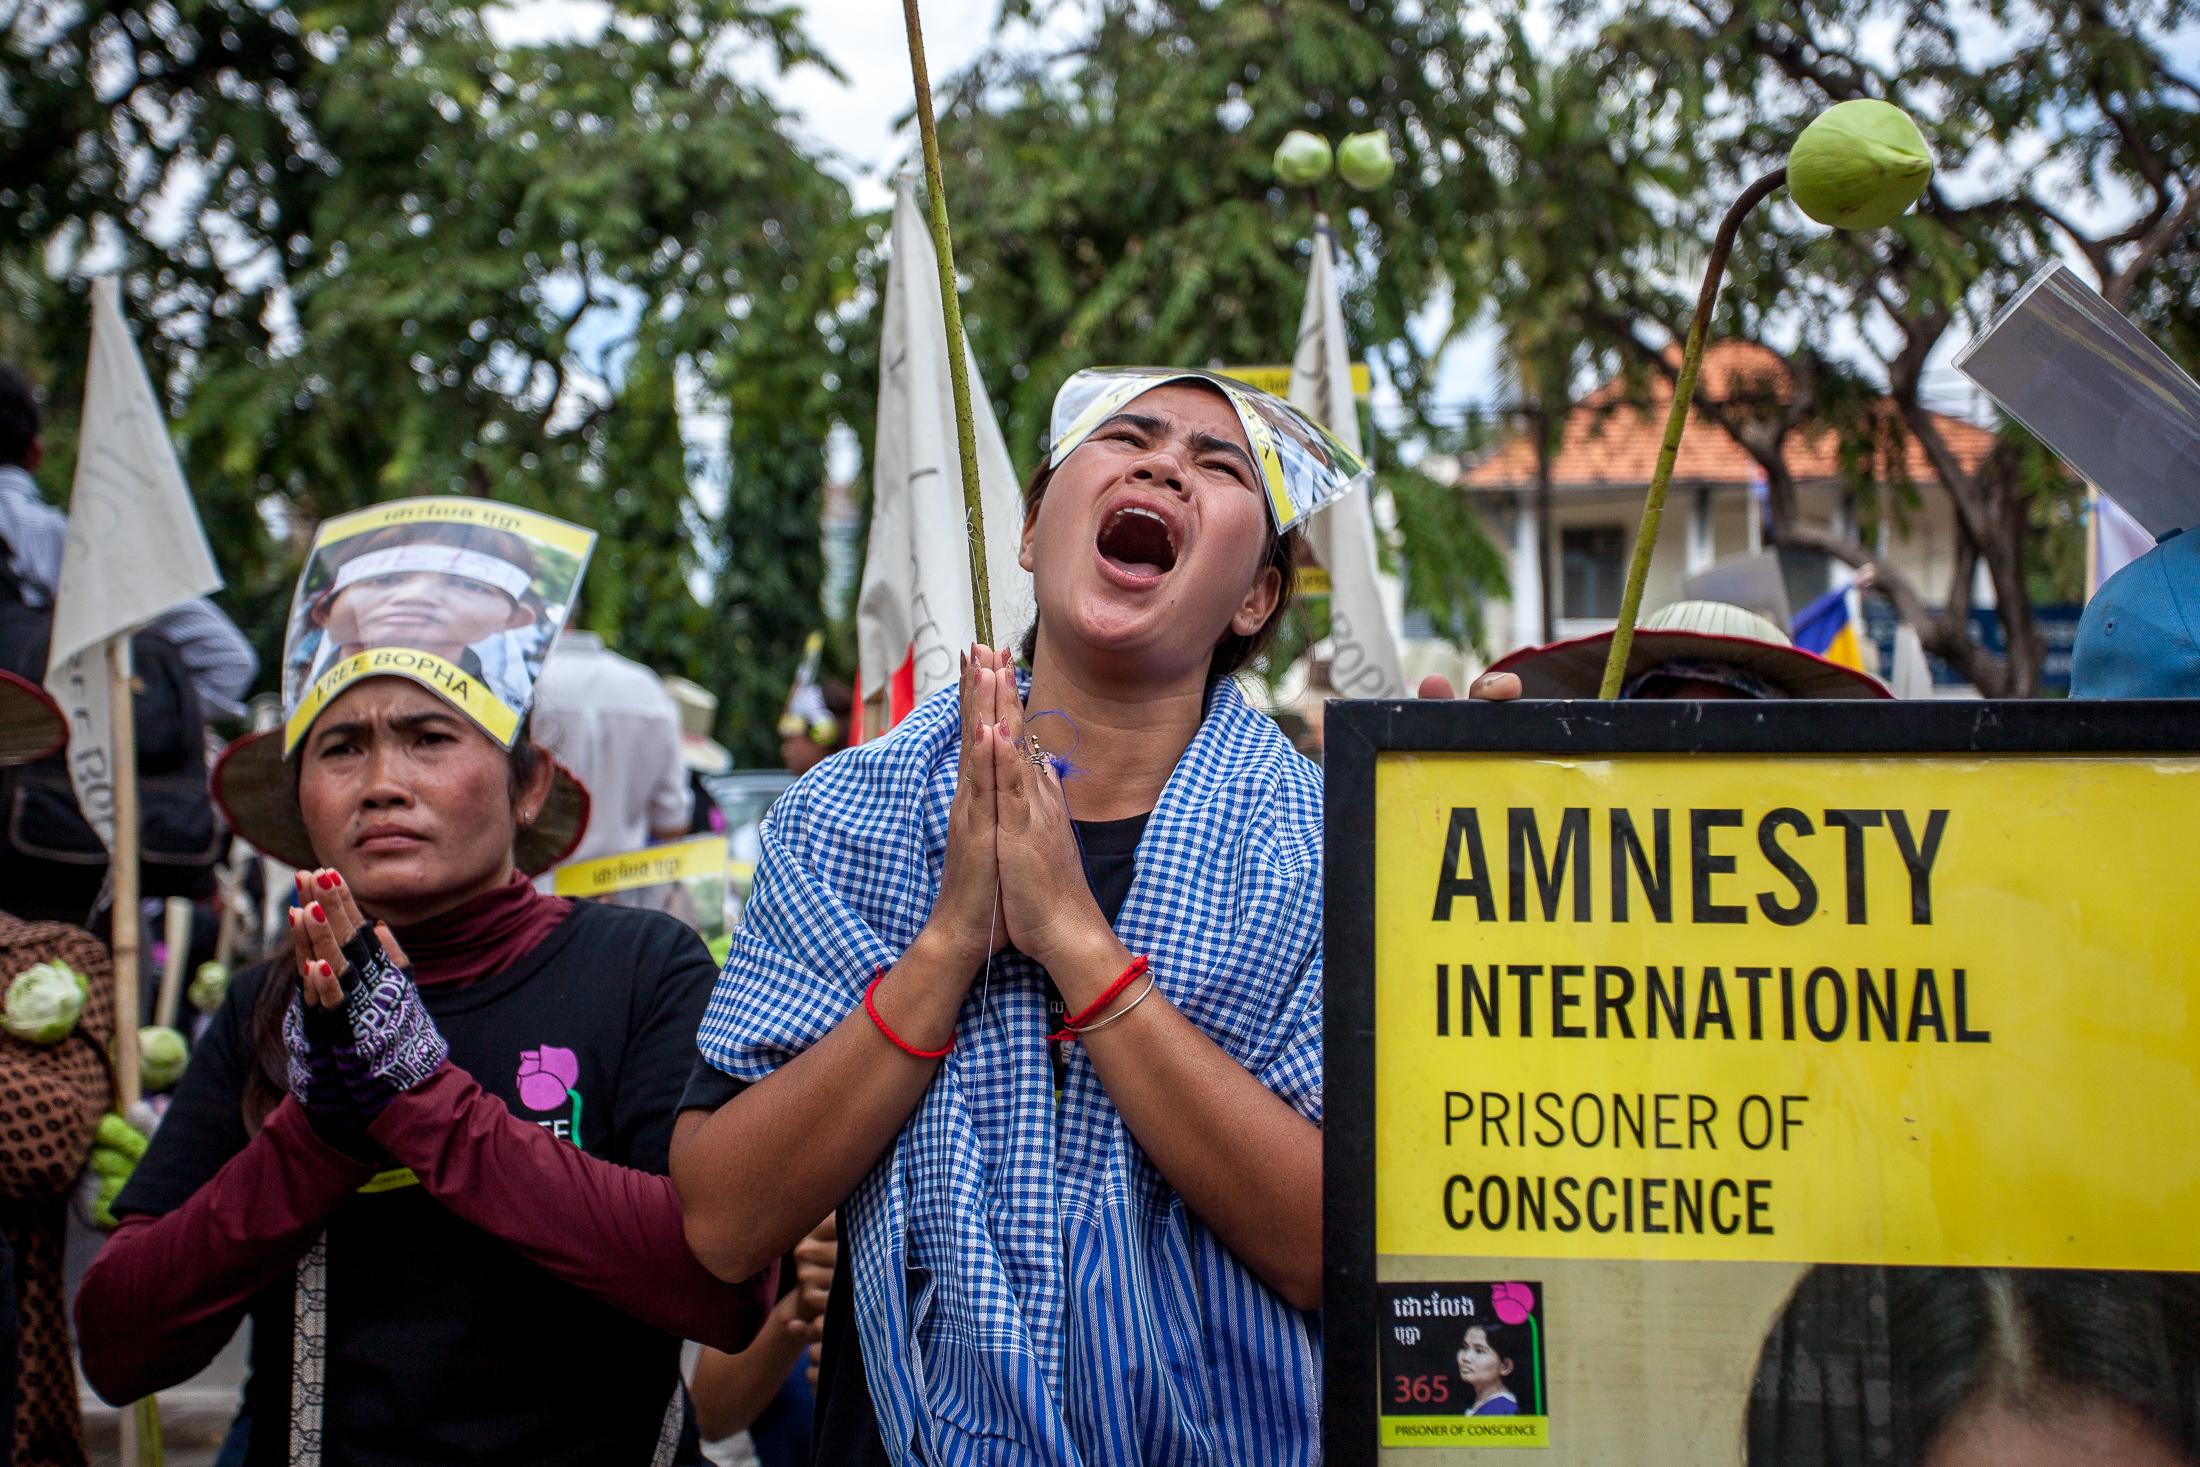 PHNOM PENH, CAMBODIA - September 10: Boeung Kak Lake activist Tep Vanny cries during a demonstration demanding the release of Amnesty International Prisoner of Conscience and fellow Boeung Kak Lake activist Yorm Bopha in Phnom Penh, Cambodia on September 10, 2013. Since Boeung Kak Lake was leased to a private company in 2007, resulting in the evictions of surrounding communities in 2009, a group of women from the Lake has taken the forefront of the fight for their rights. Although their activism was initially dedicated to saving their homes, they are now some of Cambodia's most well-known, outspoken and fearless activists, becoming an iconic symbol of the fight of human rights and justice in Cambodia. Photo: © Omar Havana